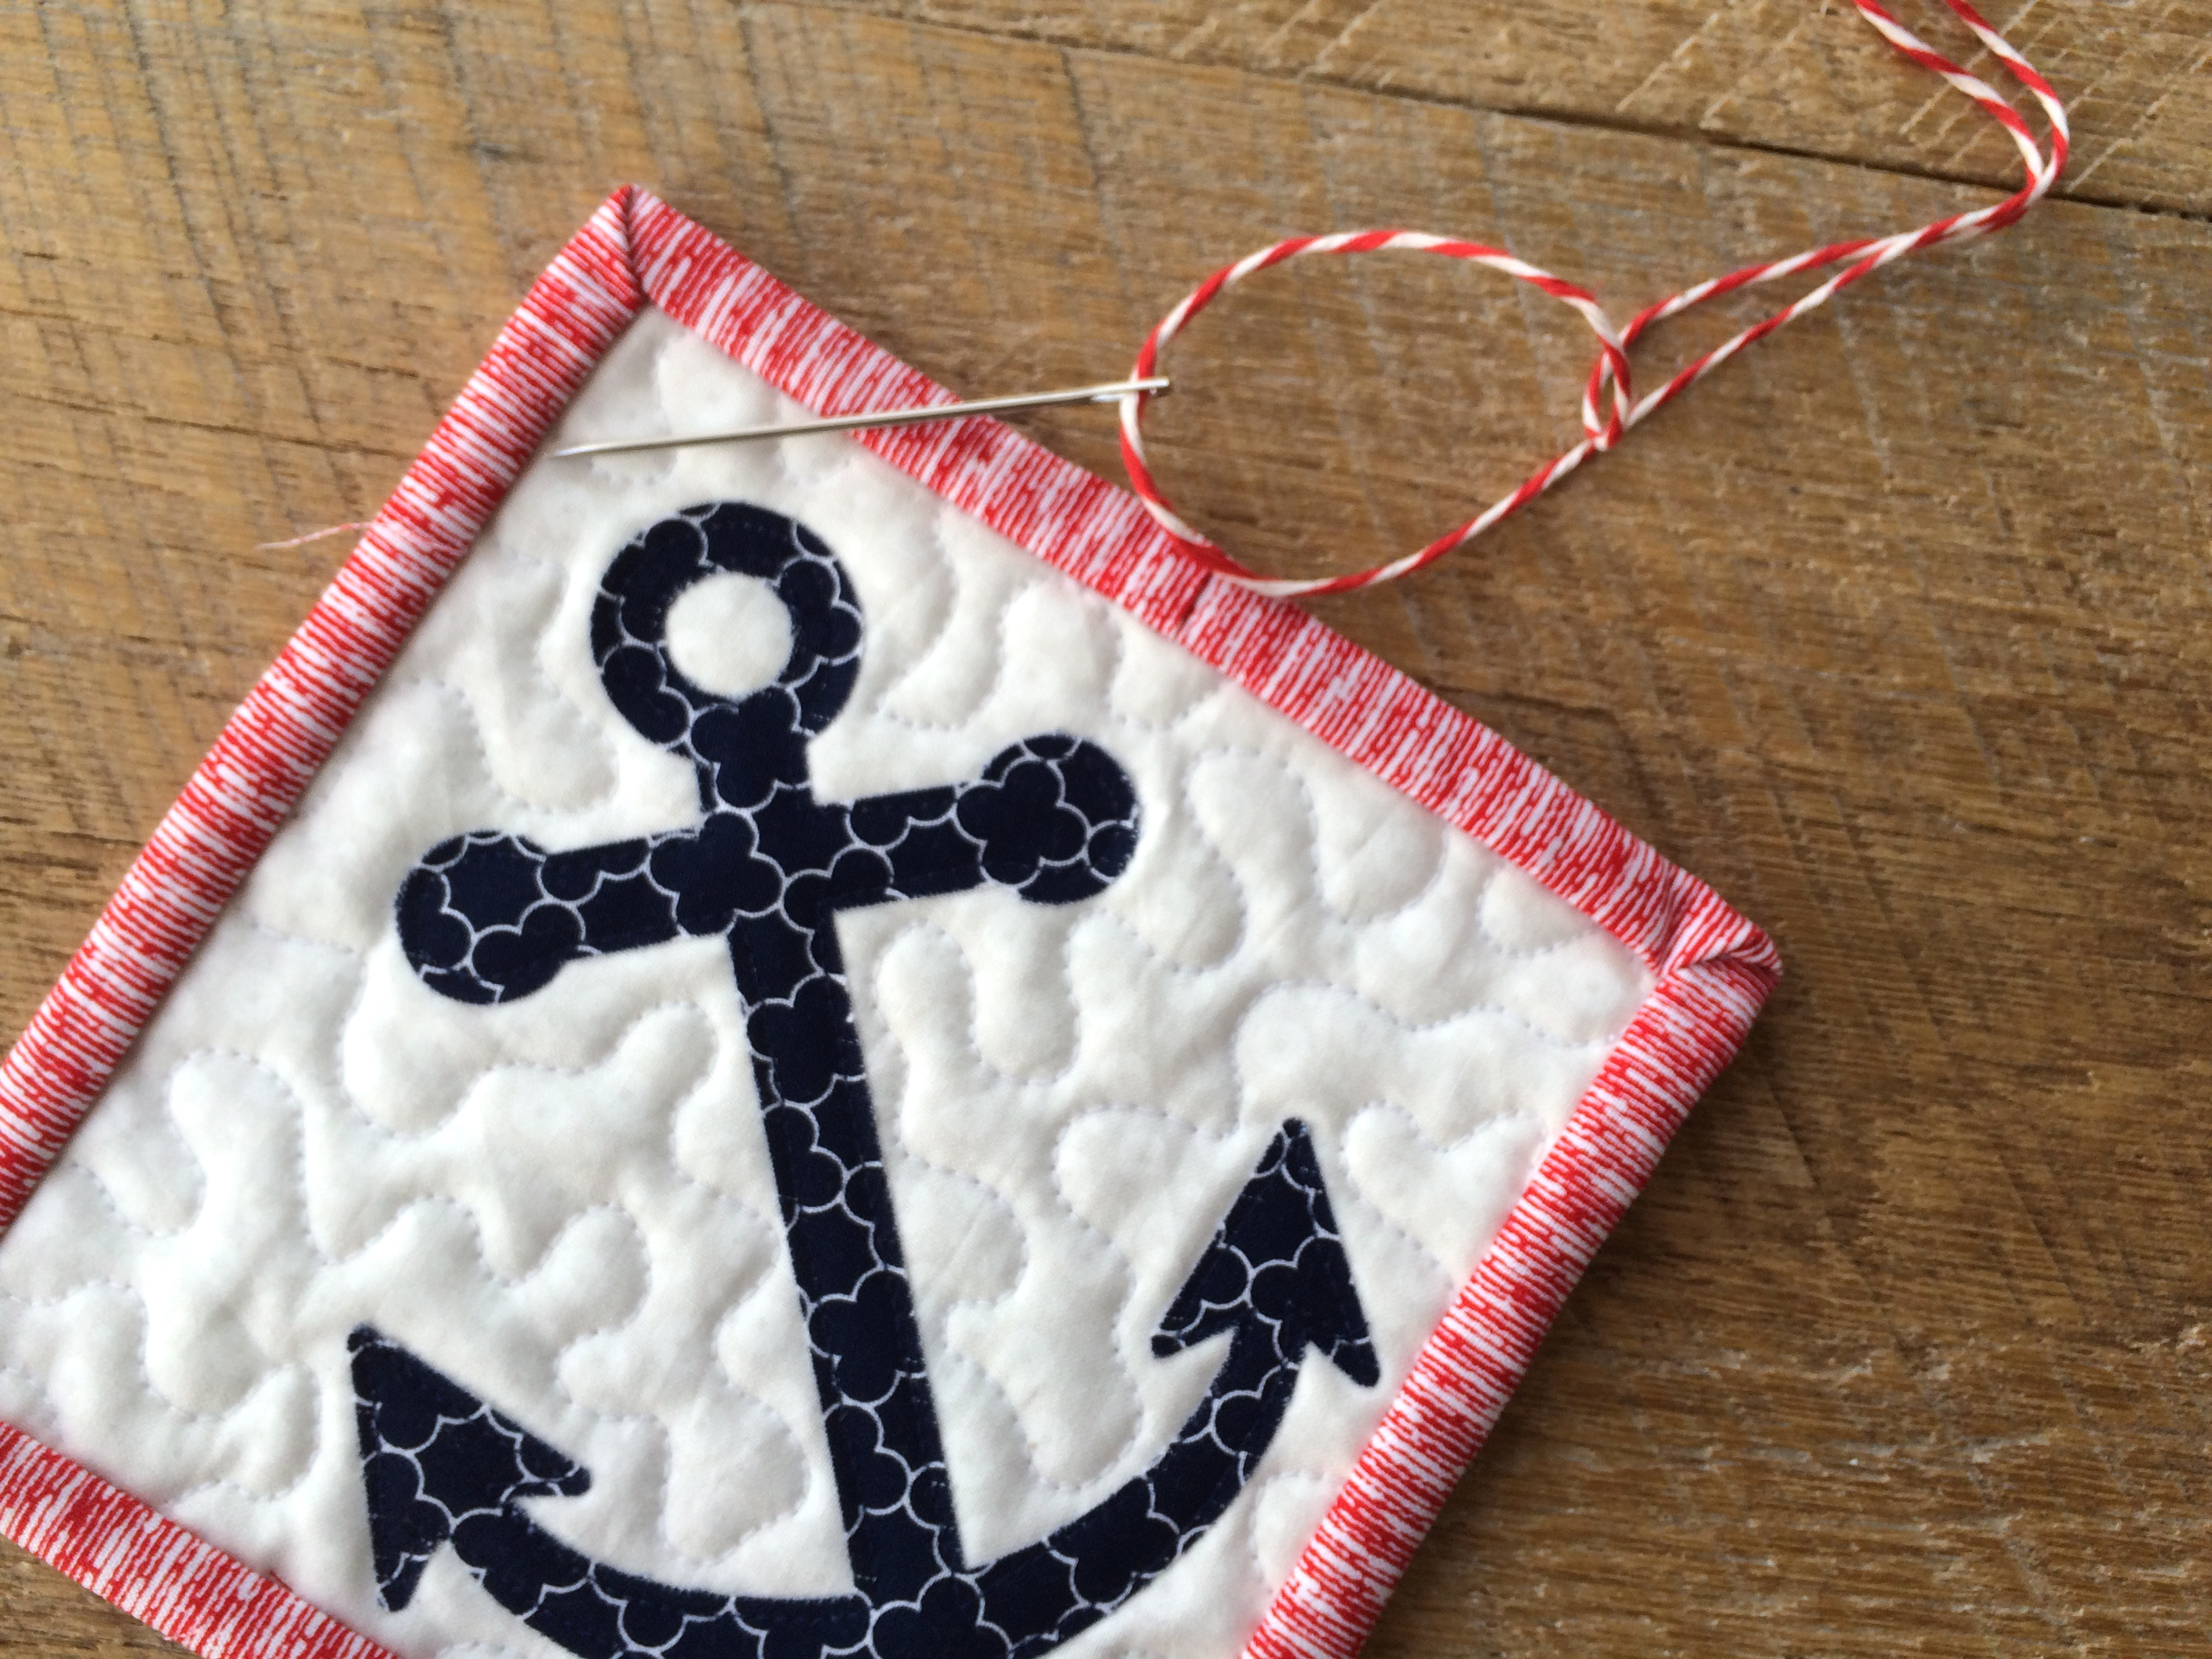 Anchor ornaments - Deck The Halls With Appliqued Anchor Ornaments